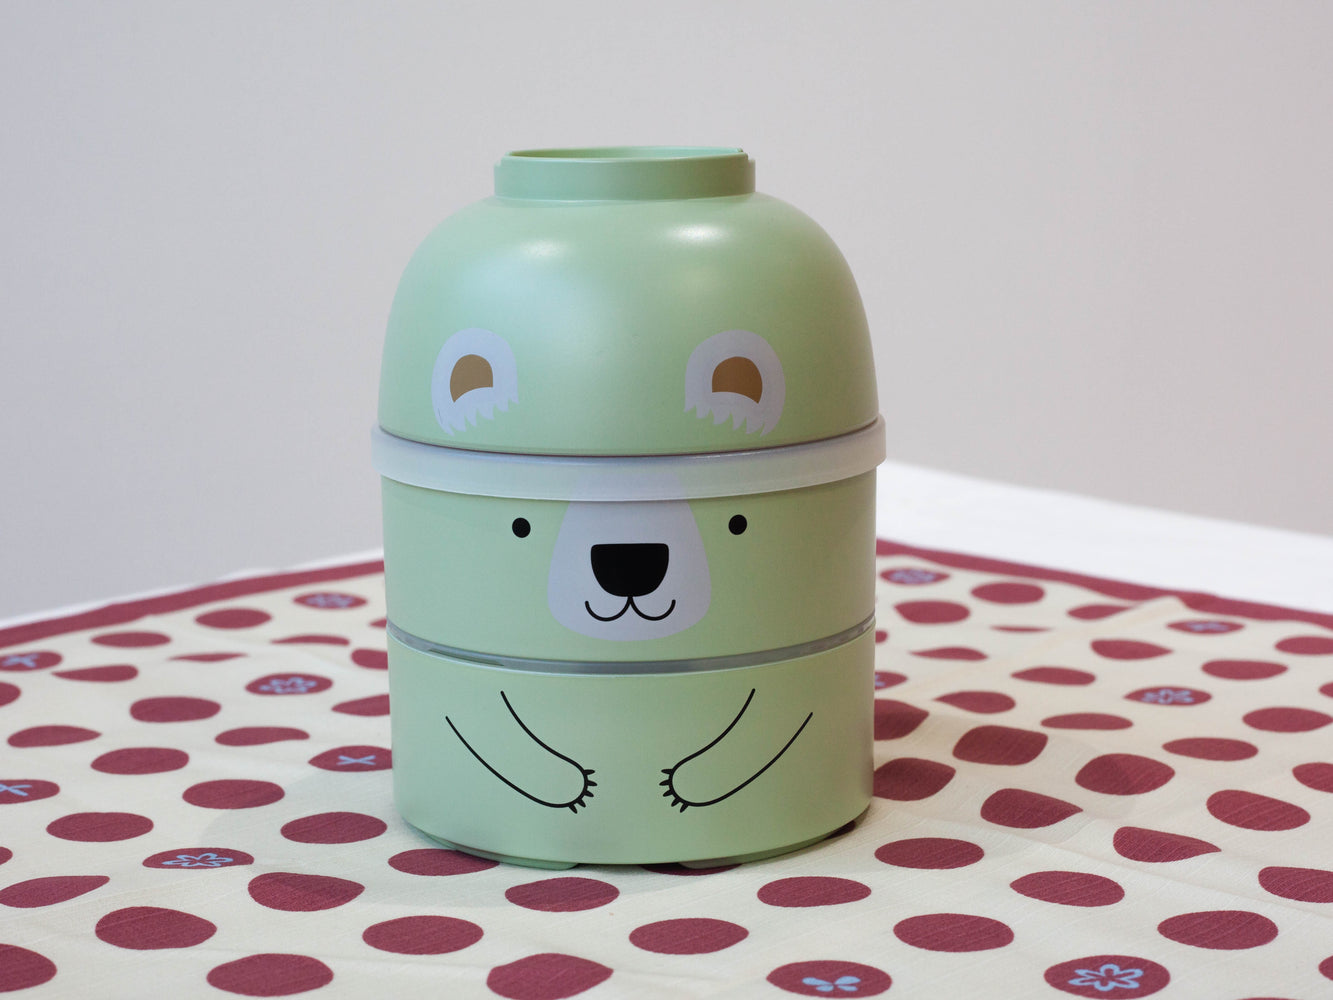 Big Kokeshi Kuma Bento | Green by Hakoya - Bento&con the Bento Boxes specialist from Kyoto